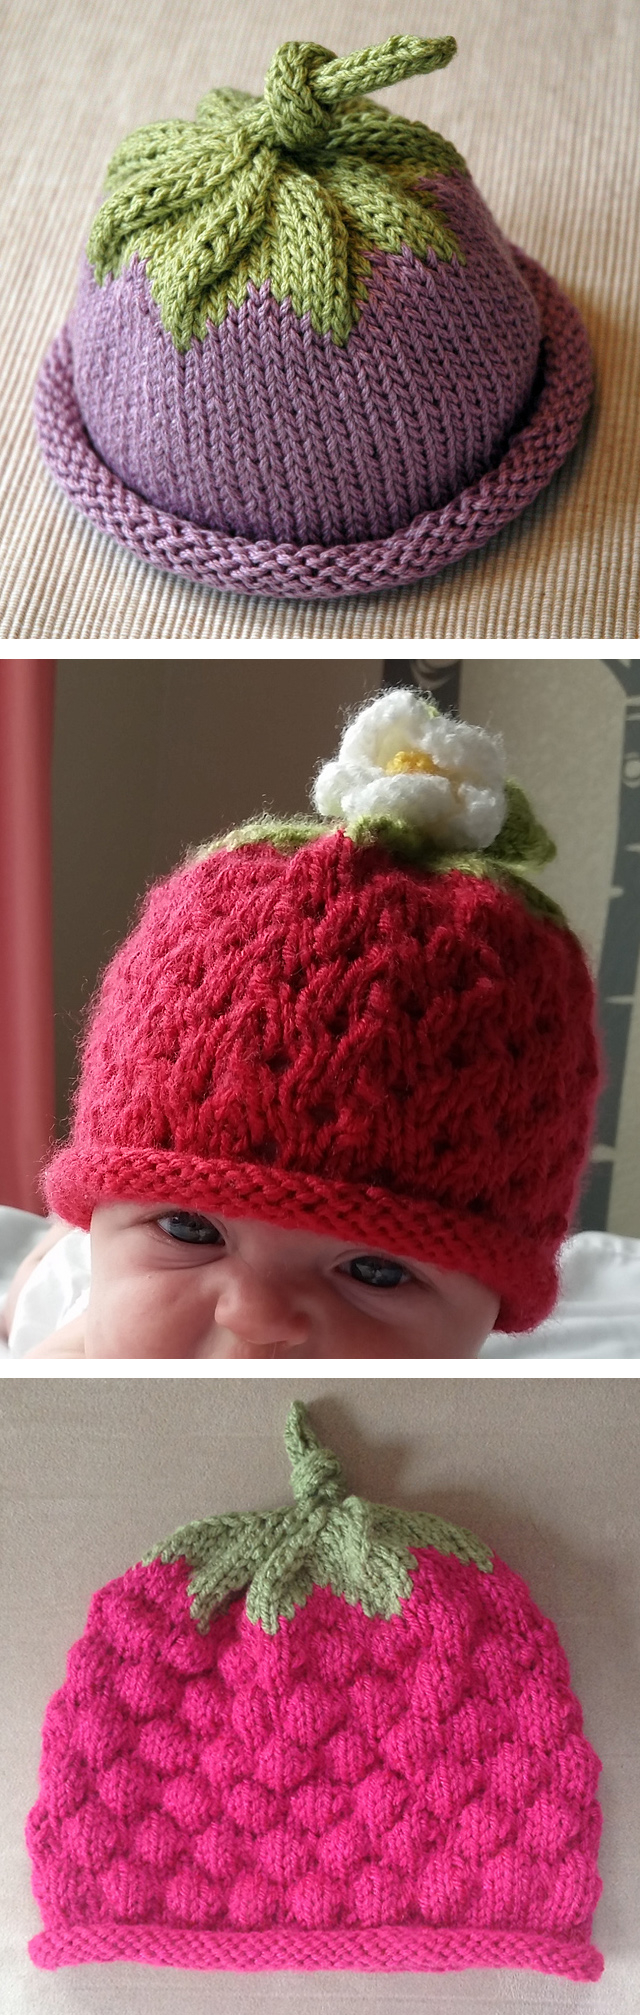 Baby Hat Patterns To Knit Fruit Knitting Patterns In The Loop Knitting